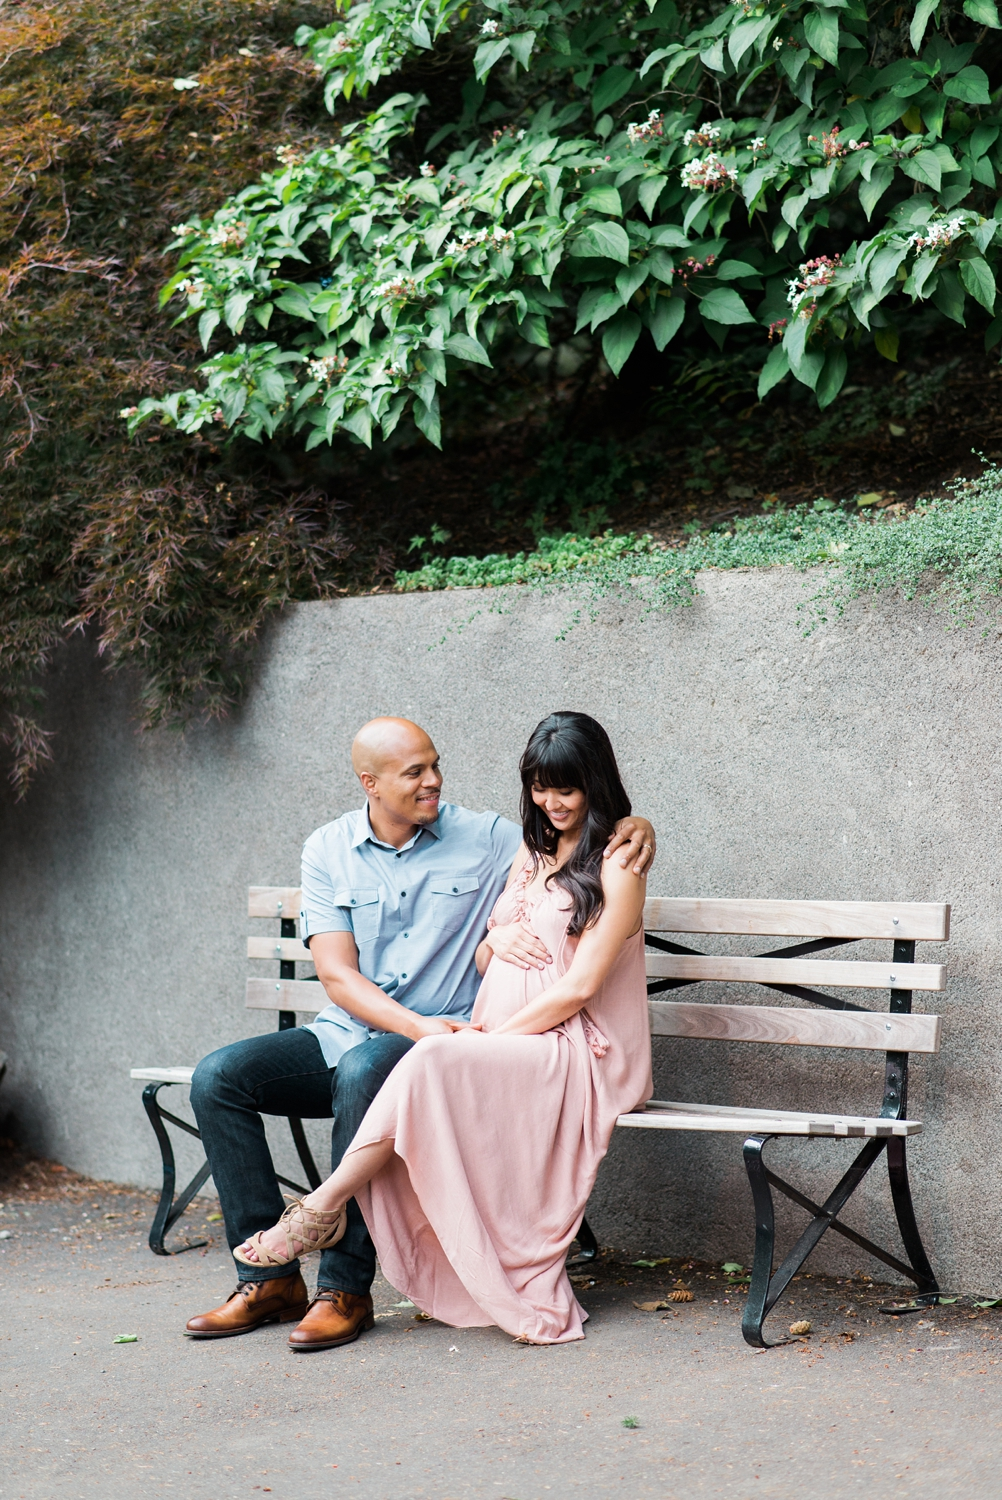 portland-maternity-photography-pittock-mansion-shelley-marie-photo-097_cr.jpg